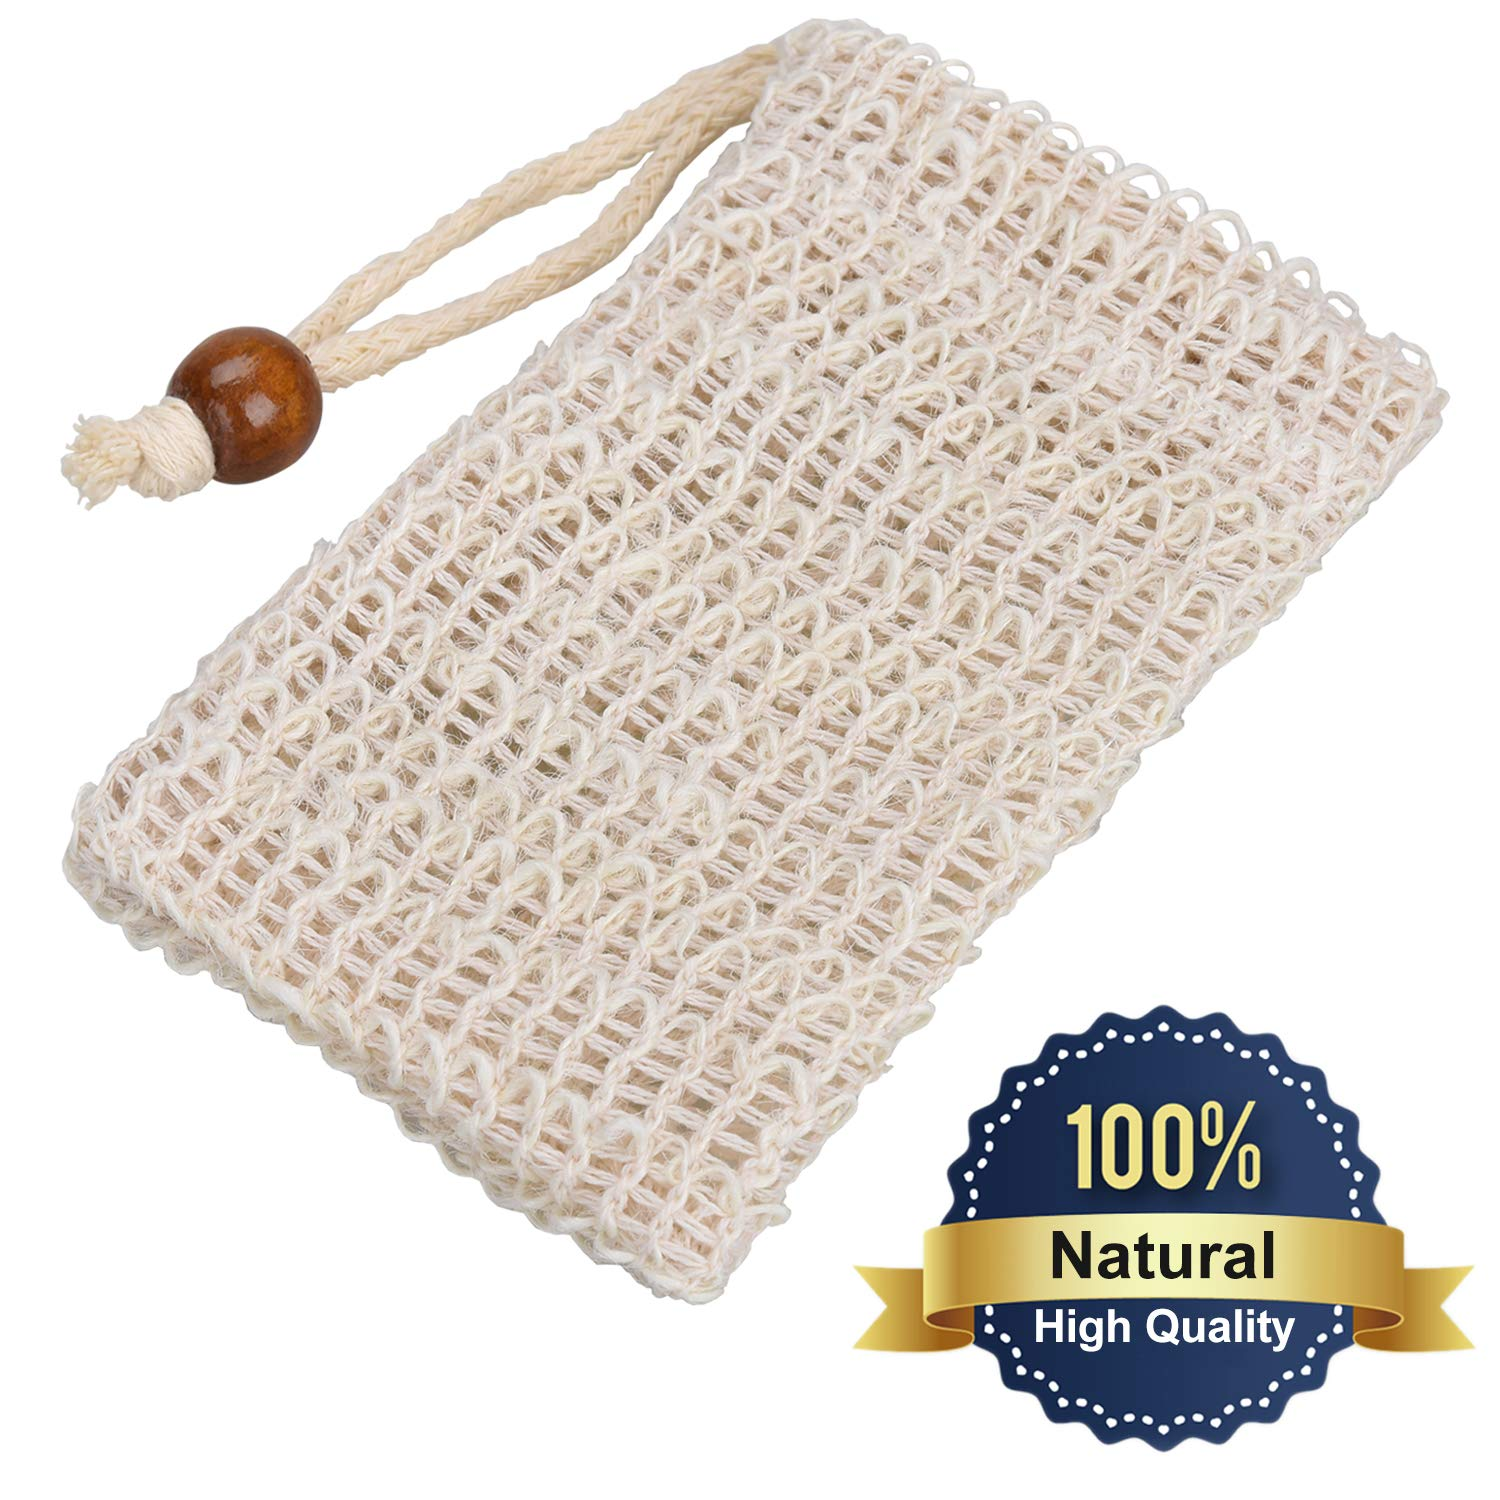 4 Exfoliating Sisal Soap Bags